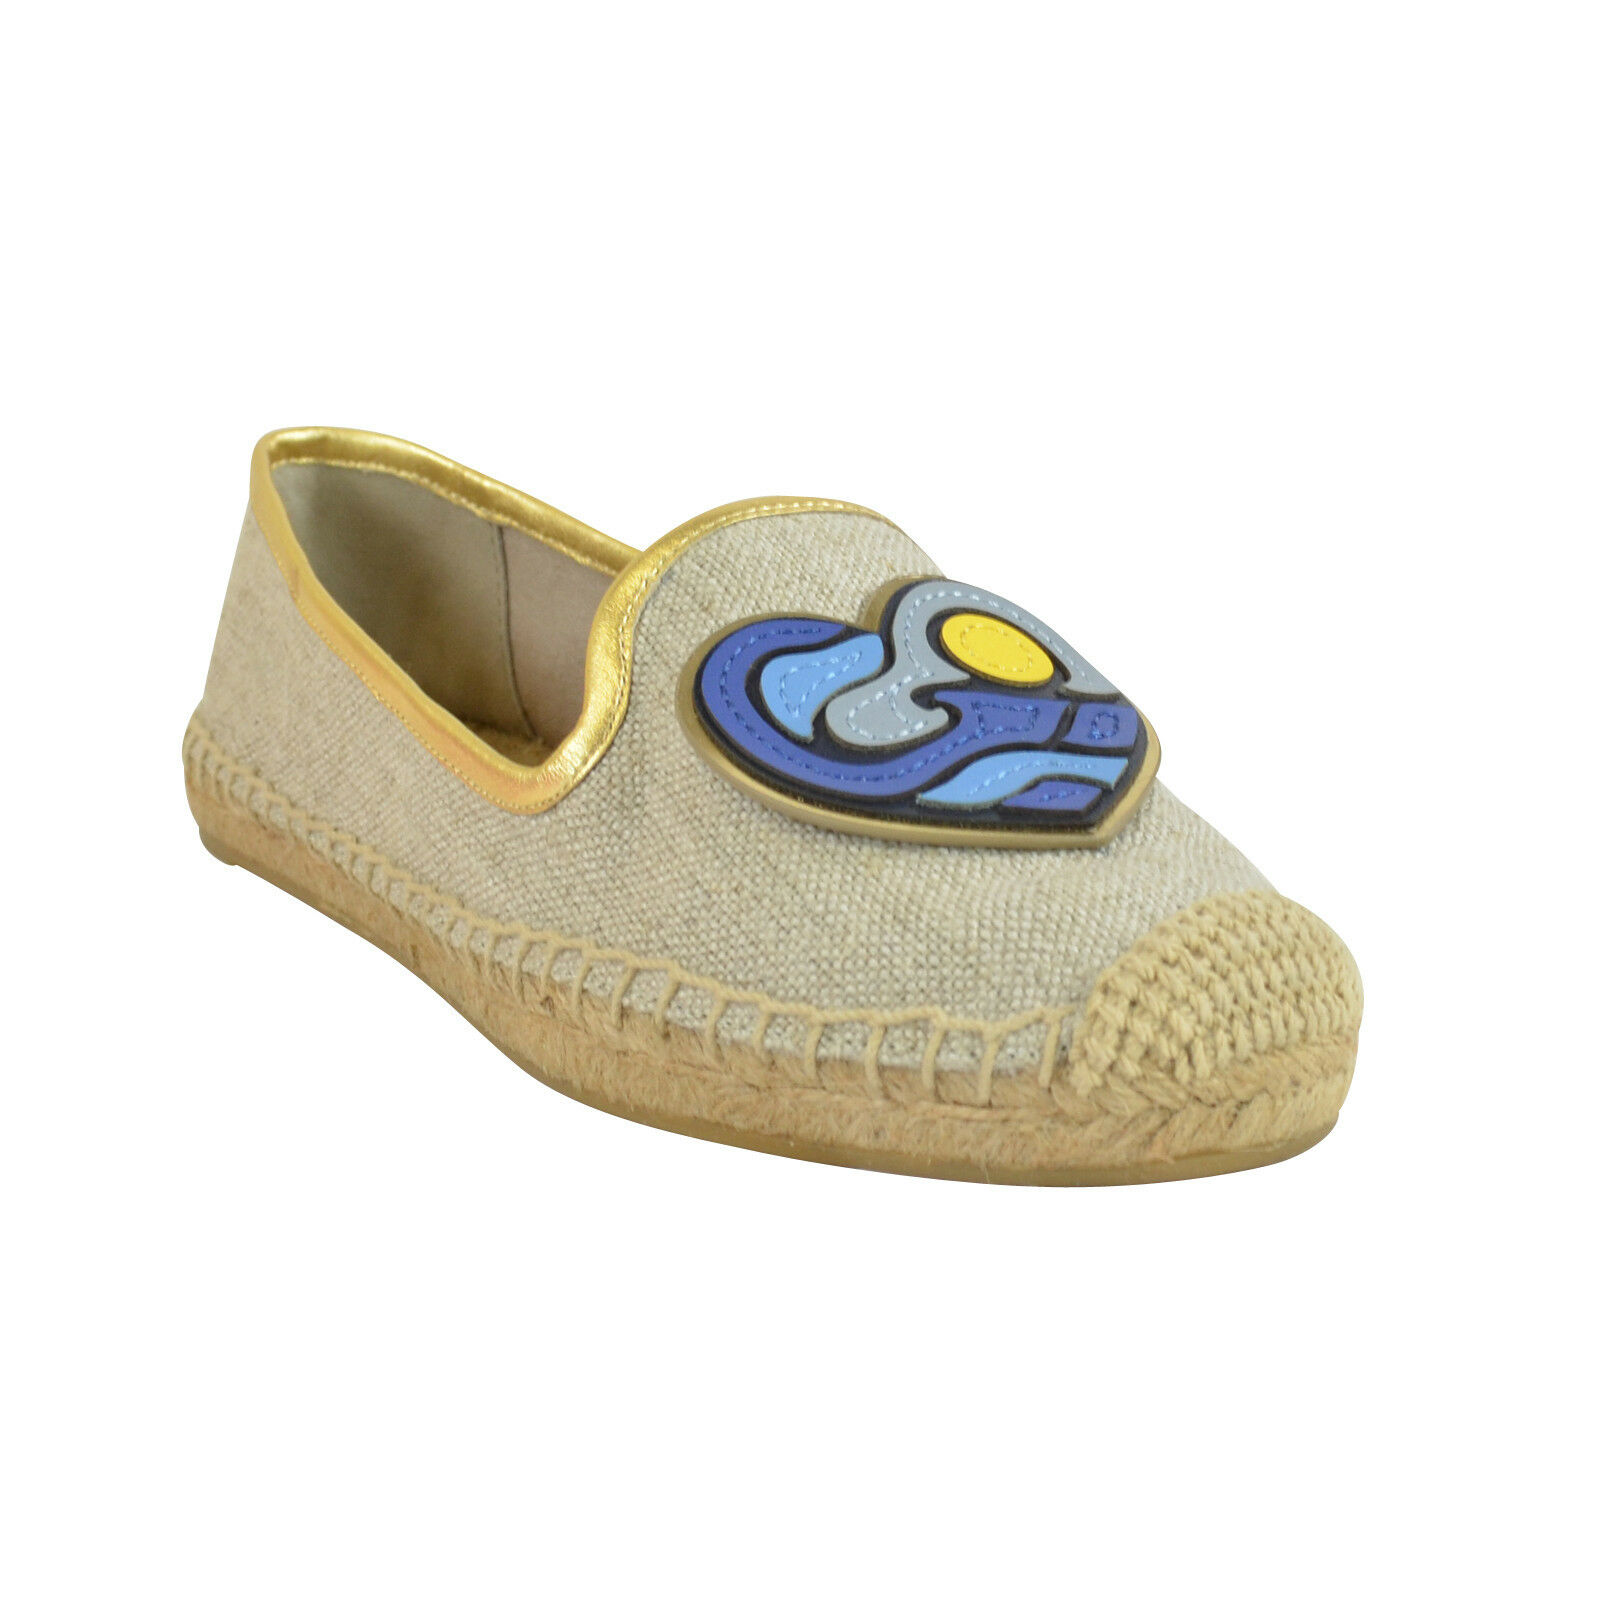 NIB Tory Burch Parrot Espadrille Flats Shoes Natural Gold 9